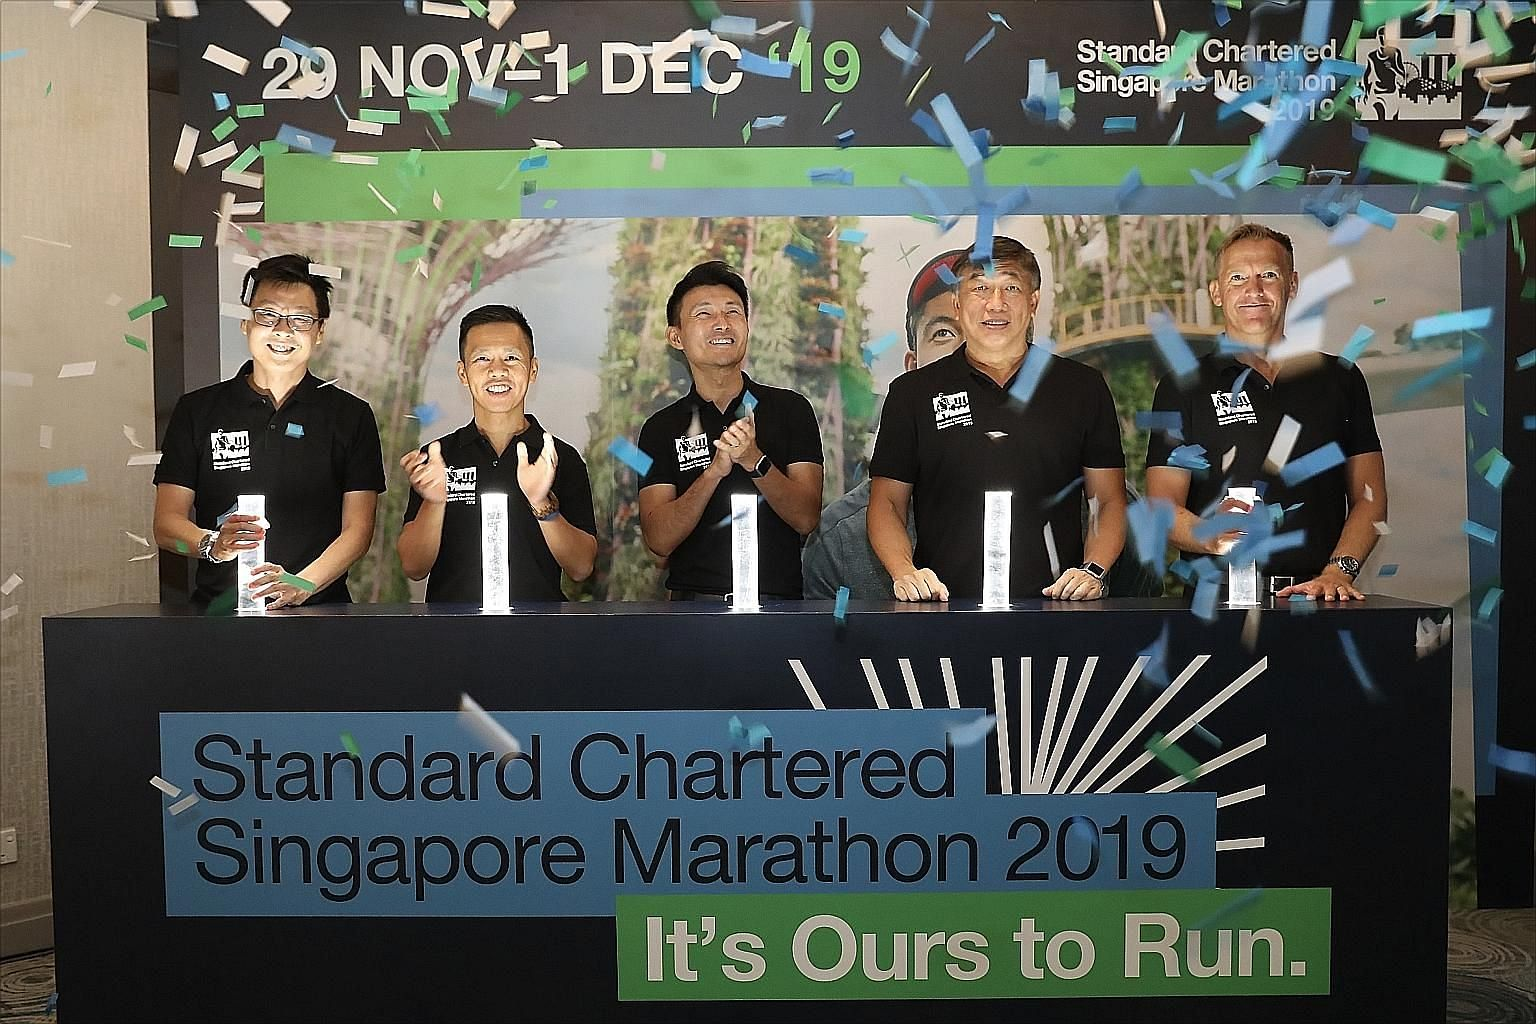 Senior Parliamentary Secretary for Transport, and Culture, Community and Youth Baey Yam Keng (centre) believes this year's evening flag-off will draw more people to cheer on the Standard Chartered Singapore Marathon runners and join in the excitement